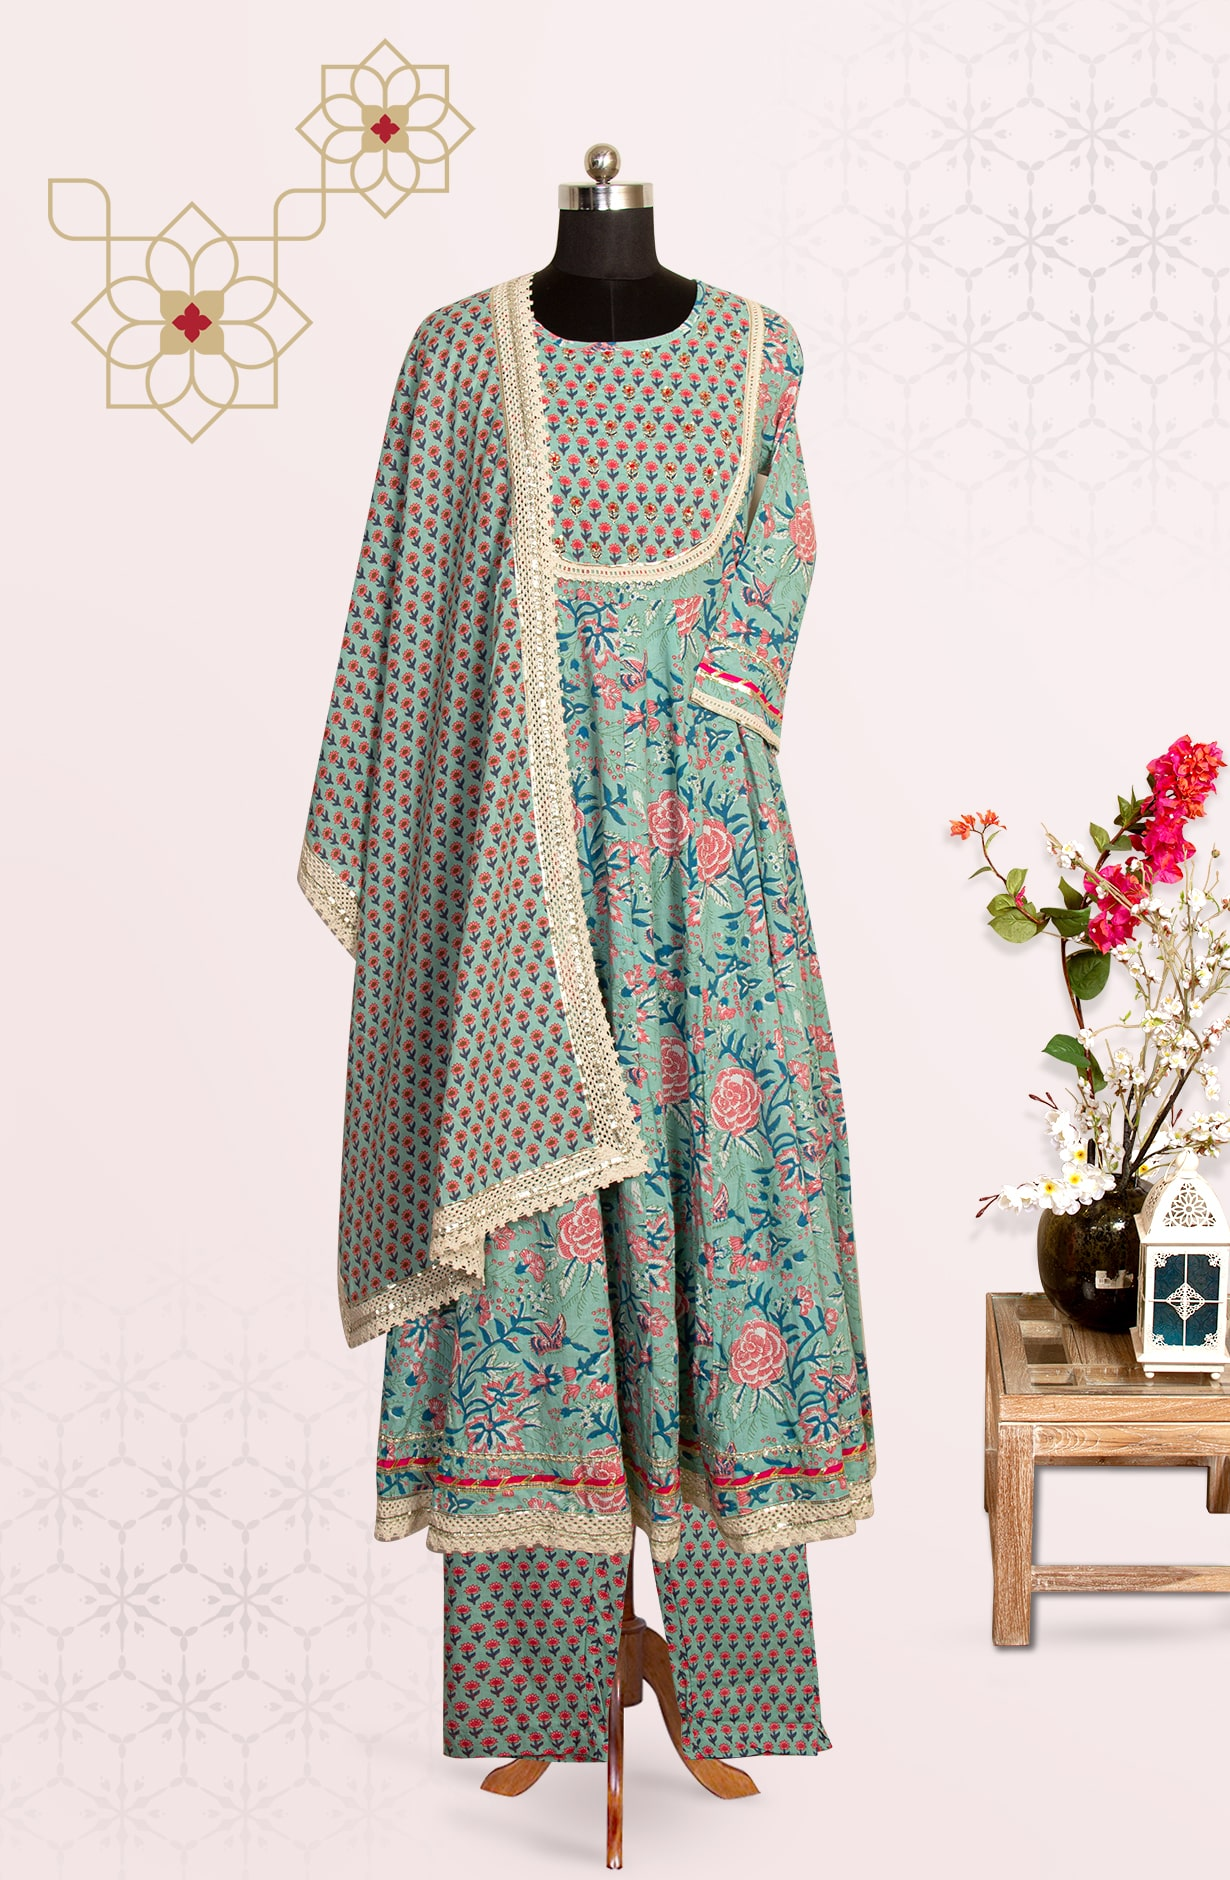 Sea Green Cotton Printed Readymade Suit Set with Pants - 691-F4101A